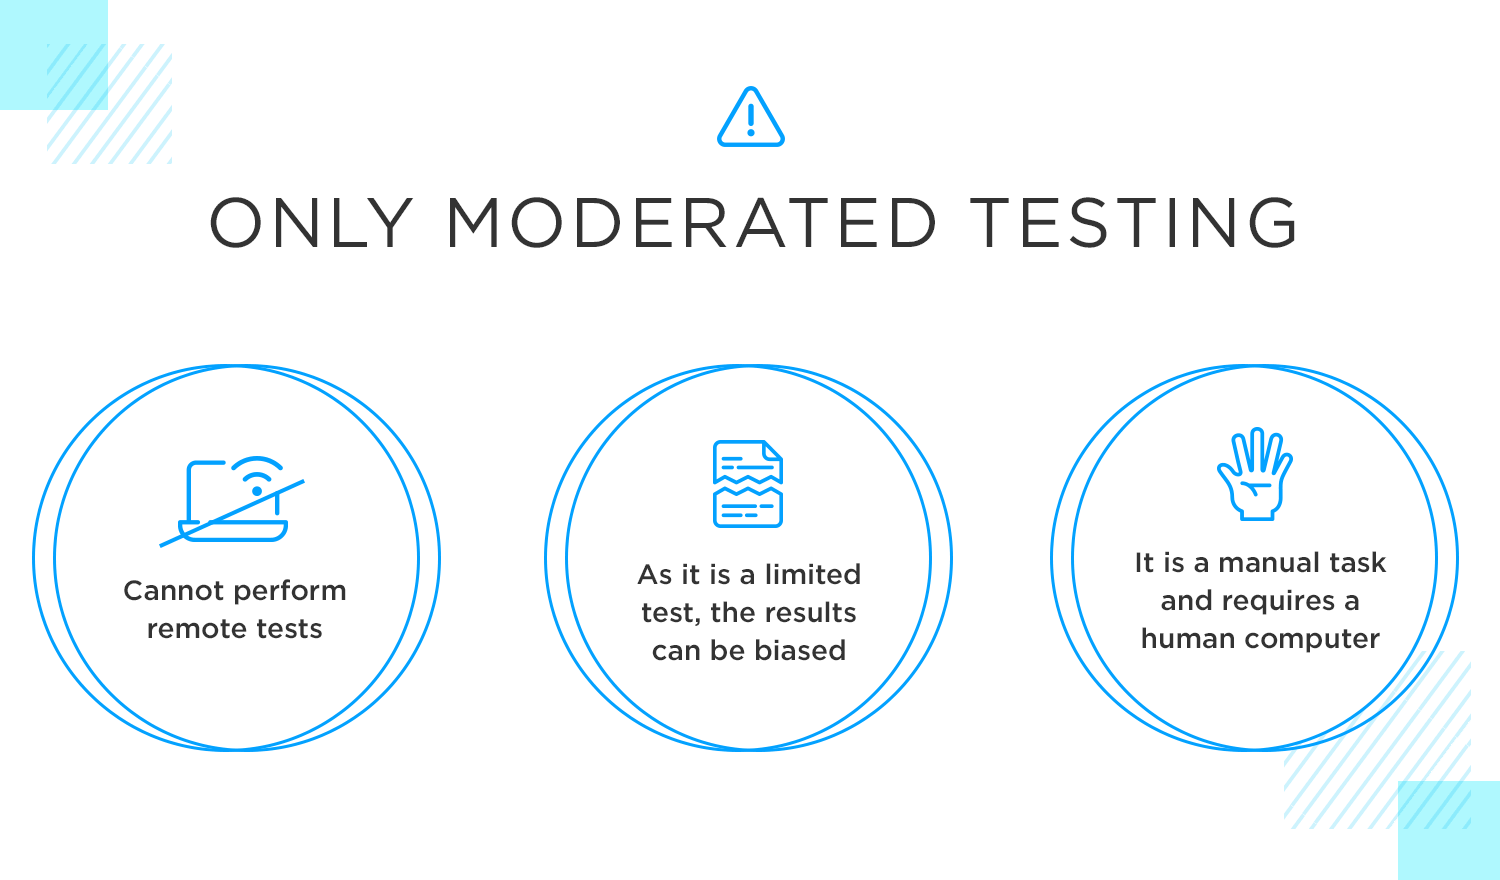 Paper prototyping - only moderated testing works